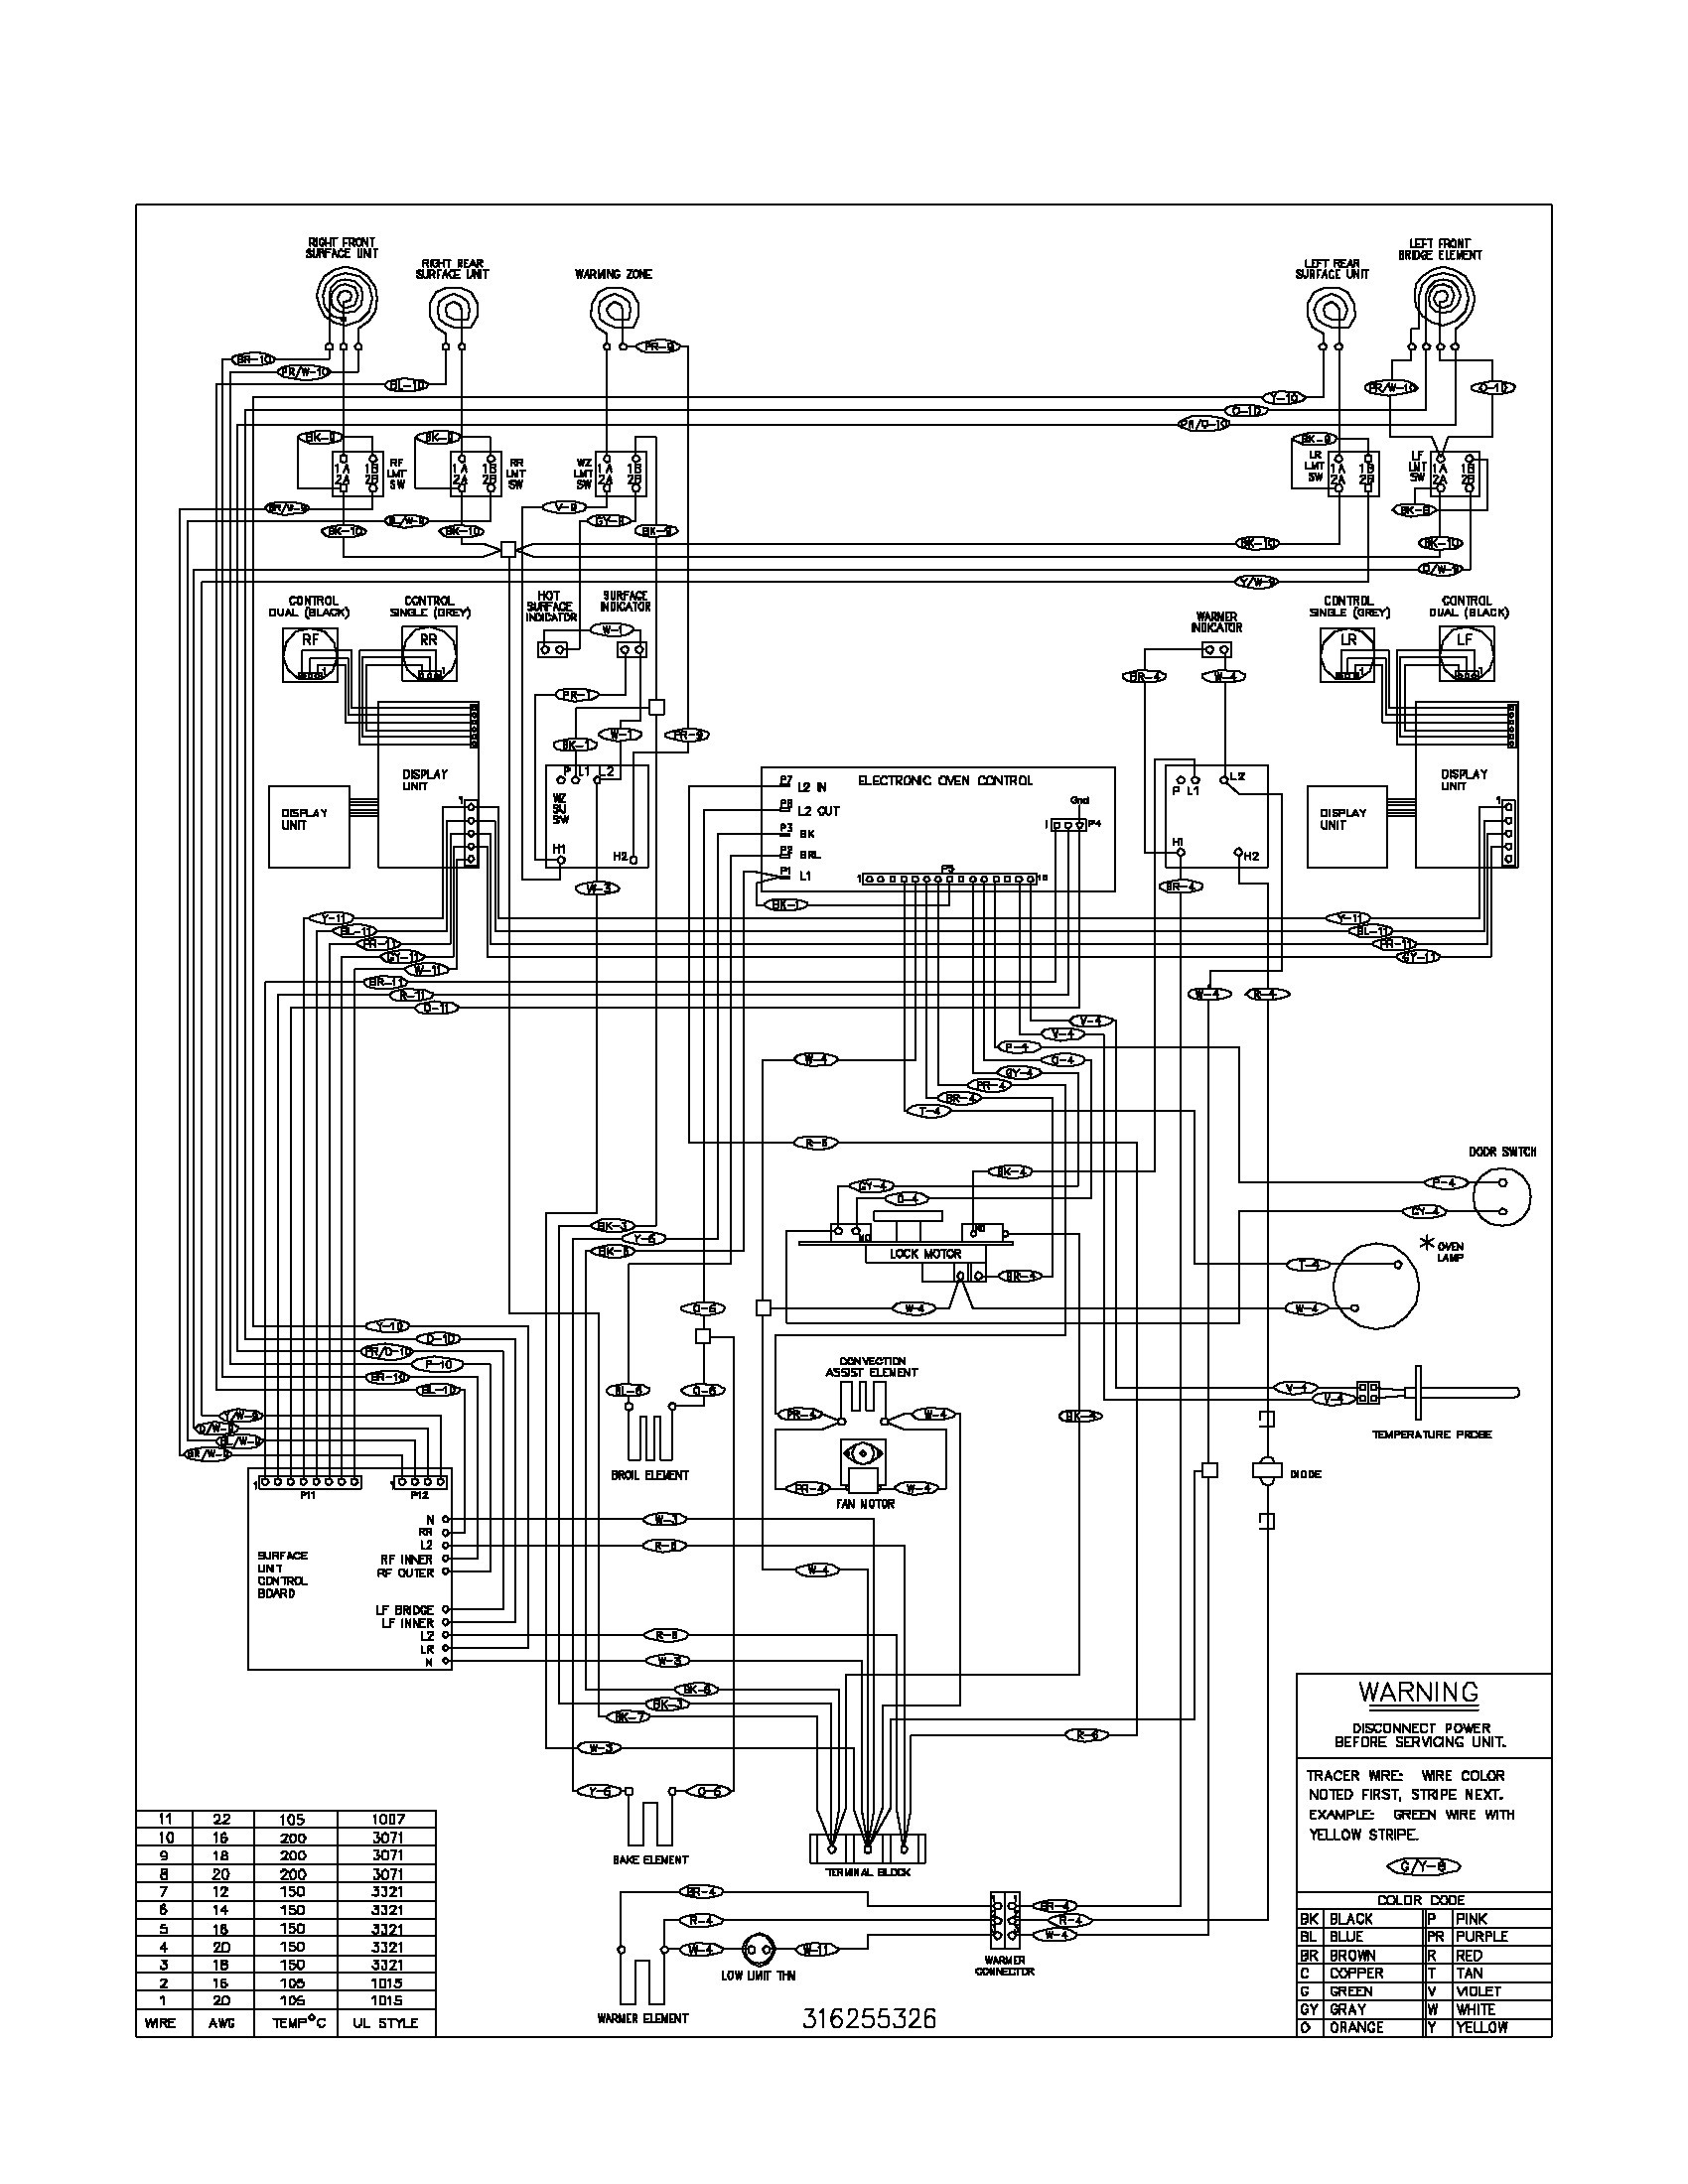 Intertherm Electric Furnace Wiring Diagram Unique nordyne E2eb 015hb  thermostat Wiring Diagram Model E2eb 015hb Elsavadorla